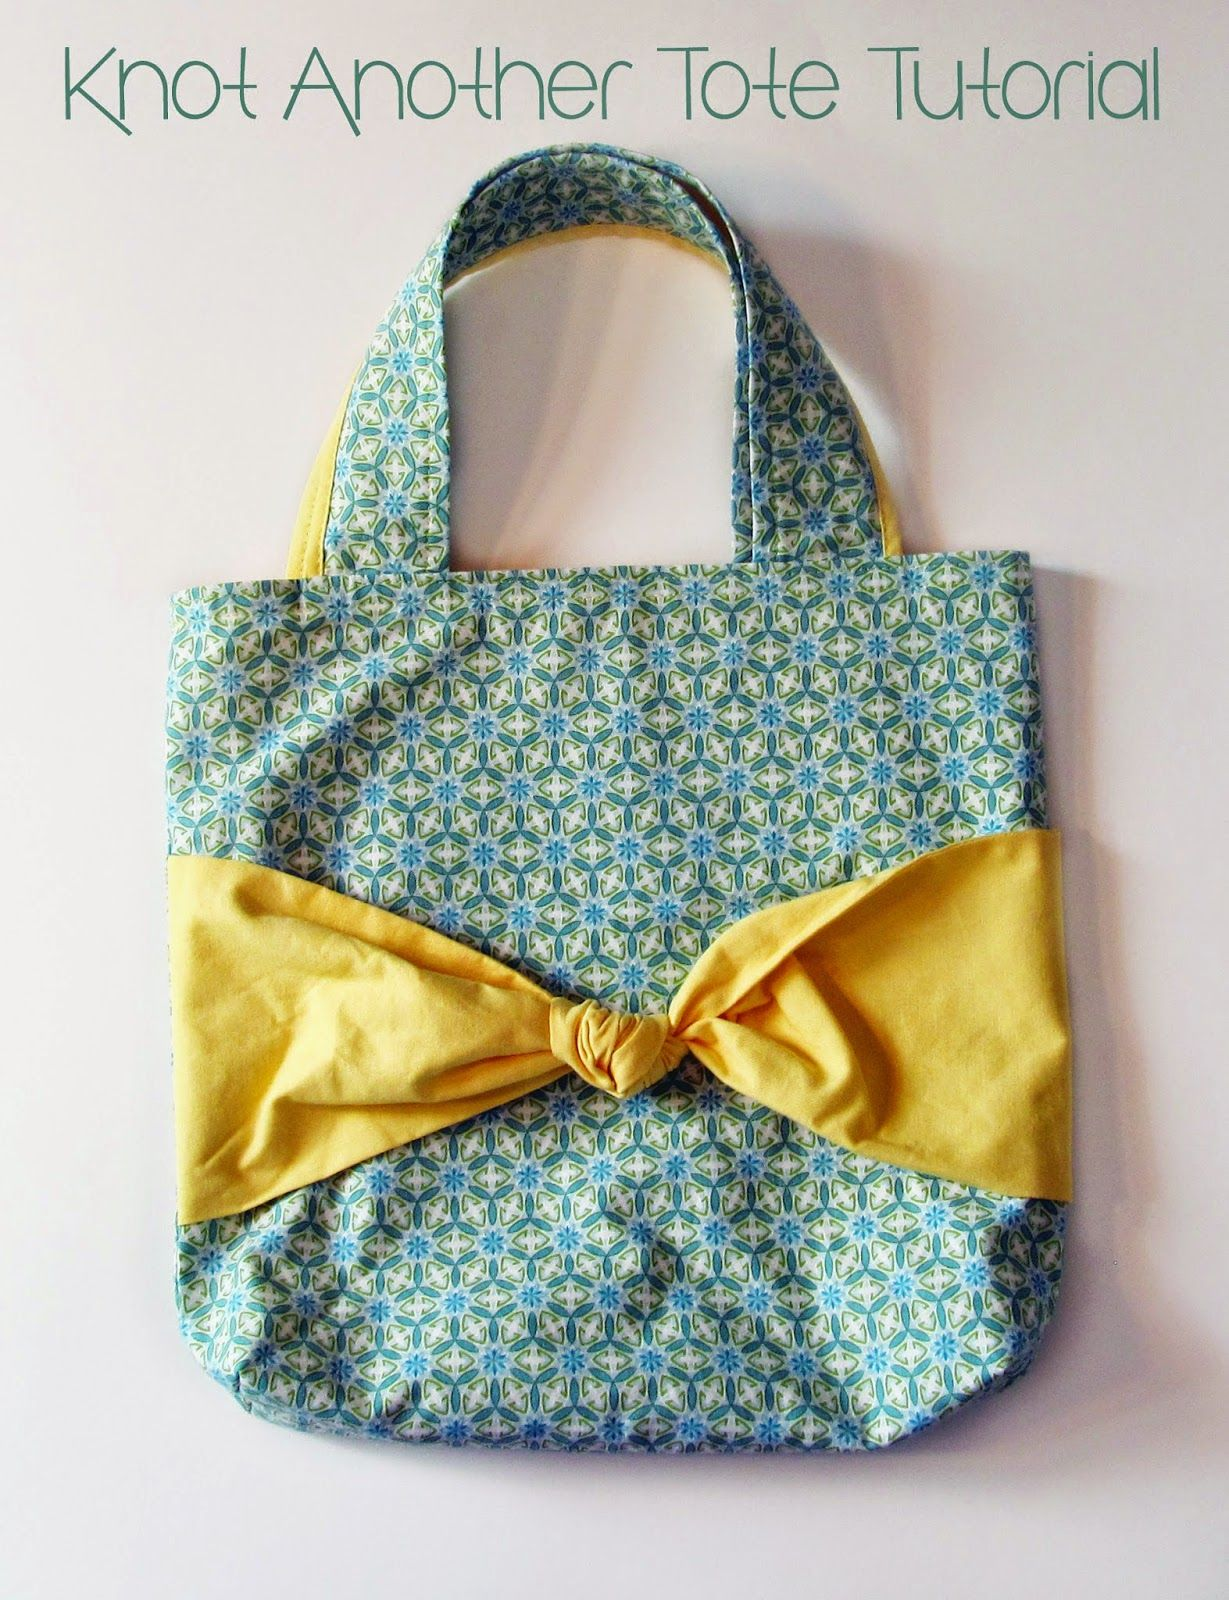 Pumpkin+&+Bunny:+Knot+Another+Tote+Tutorial